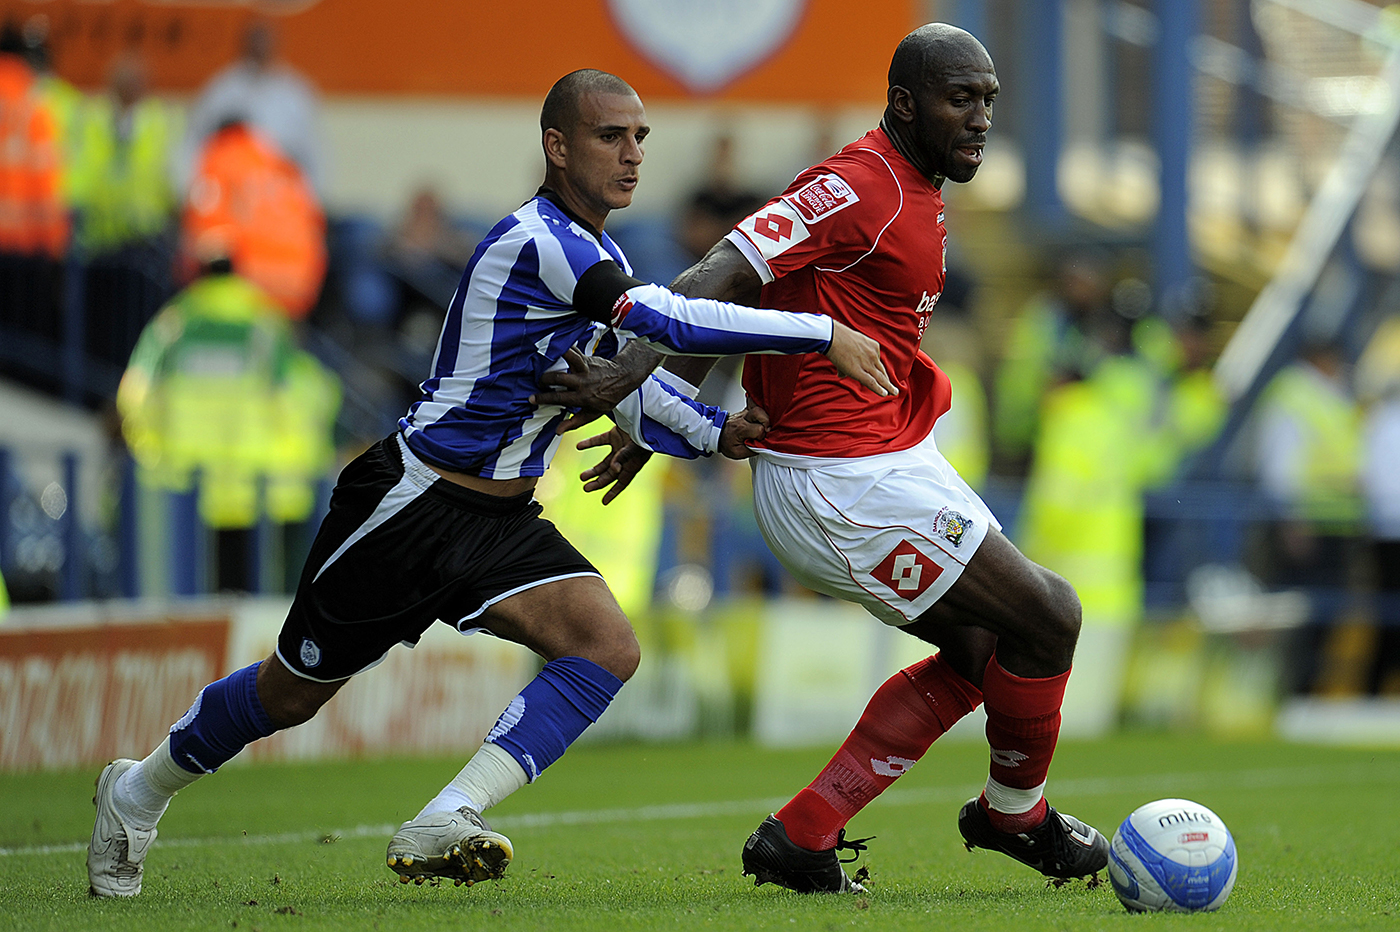 Darren Moore in action for the Reds